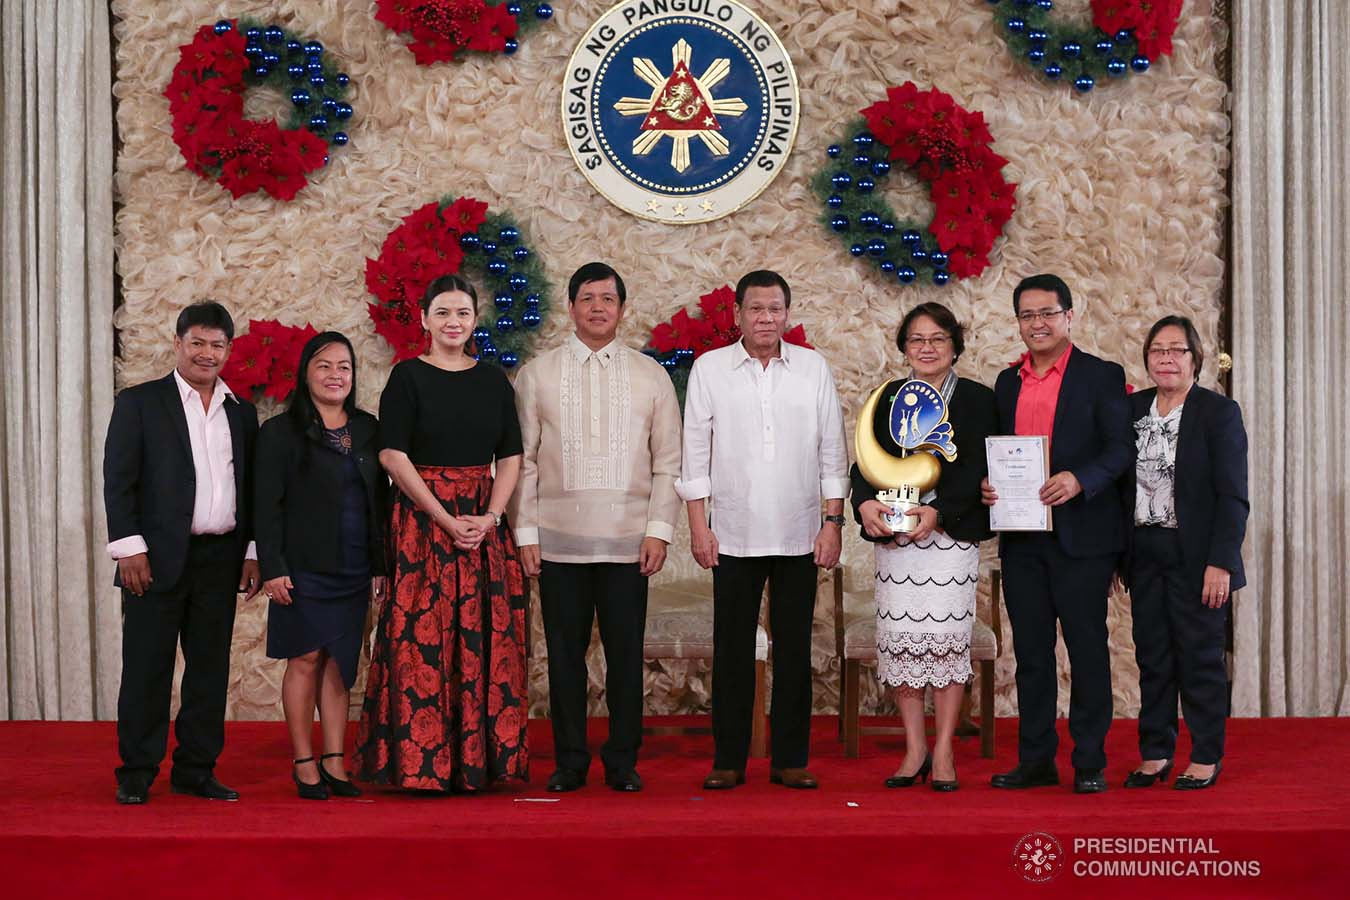 President Rodrigo Roa Duterte poses for posterity with Social Welfare and Development Secretary Rolando Bautista, Council for the Welfare of Children (CWC) Executive Director Mary Uy, and the awardees of the 2018 Presidential Award for Child-Friendly Municipalities and Cities (PACFMC) during the awarding ceremony at the Malacañan Palace on November 28, 2019. ALBERT ALCAIN/PRESIDENTIAL PHOTO